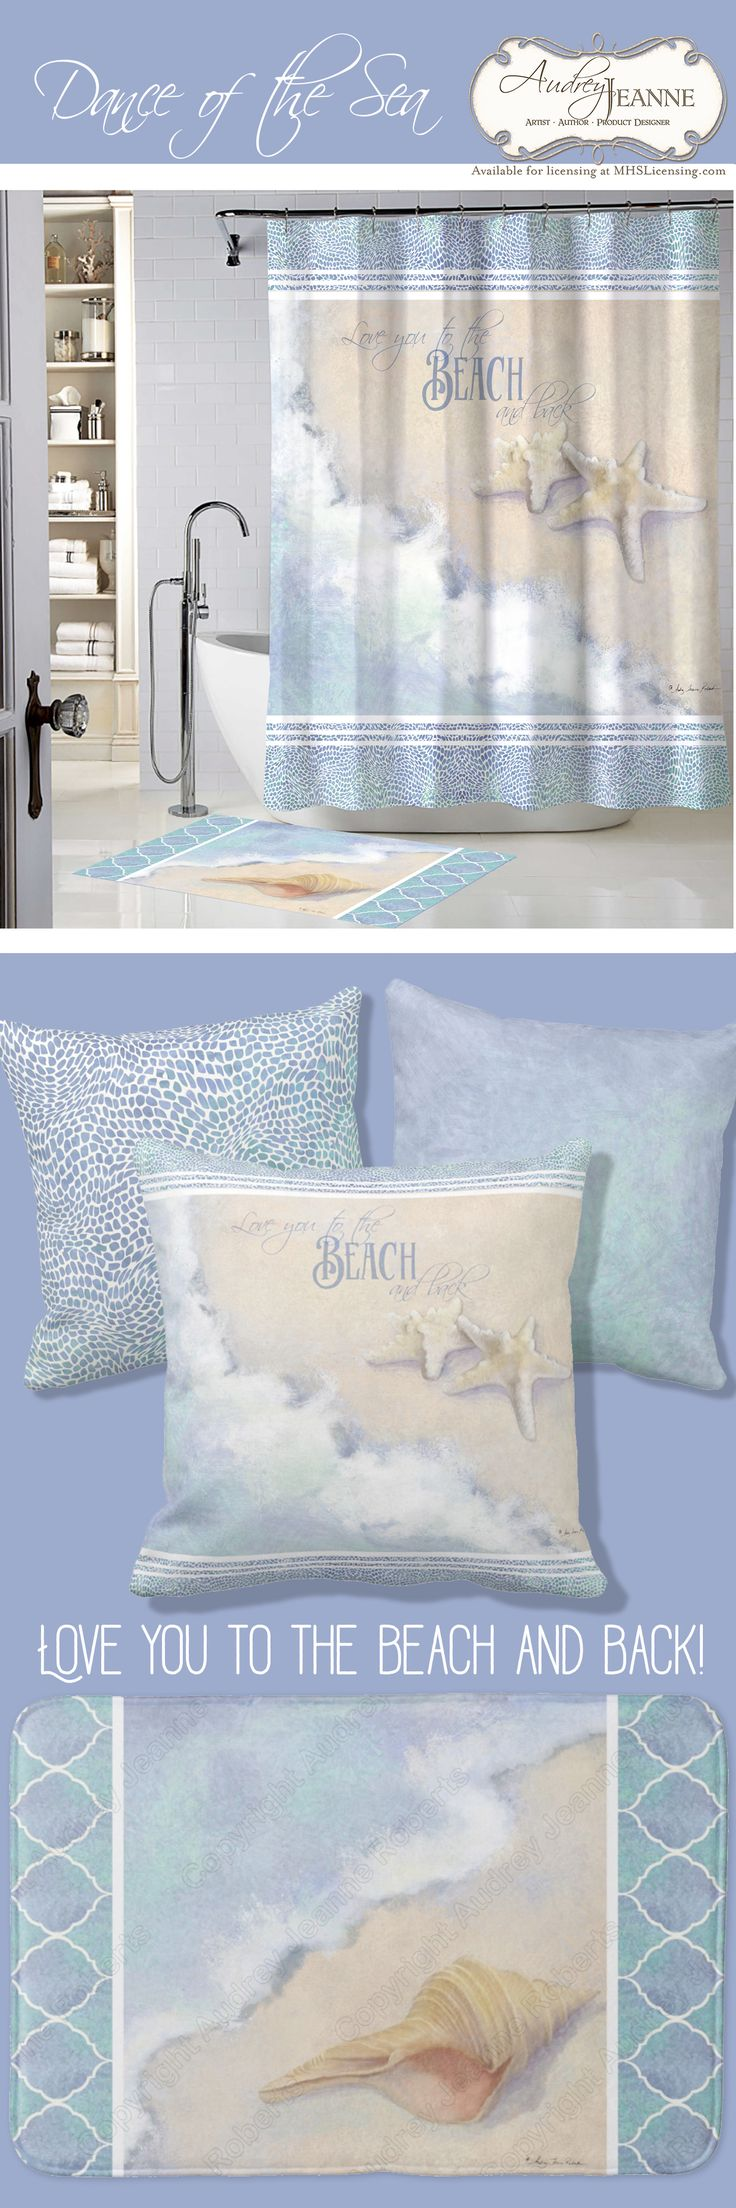 """Dance of the Sea"" artwork collection by Audrey Jeanne Roberts 